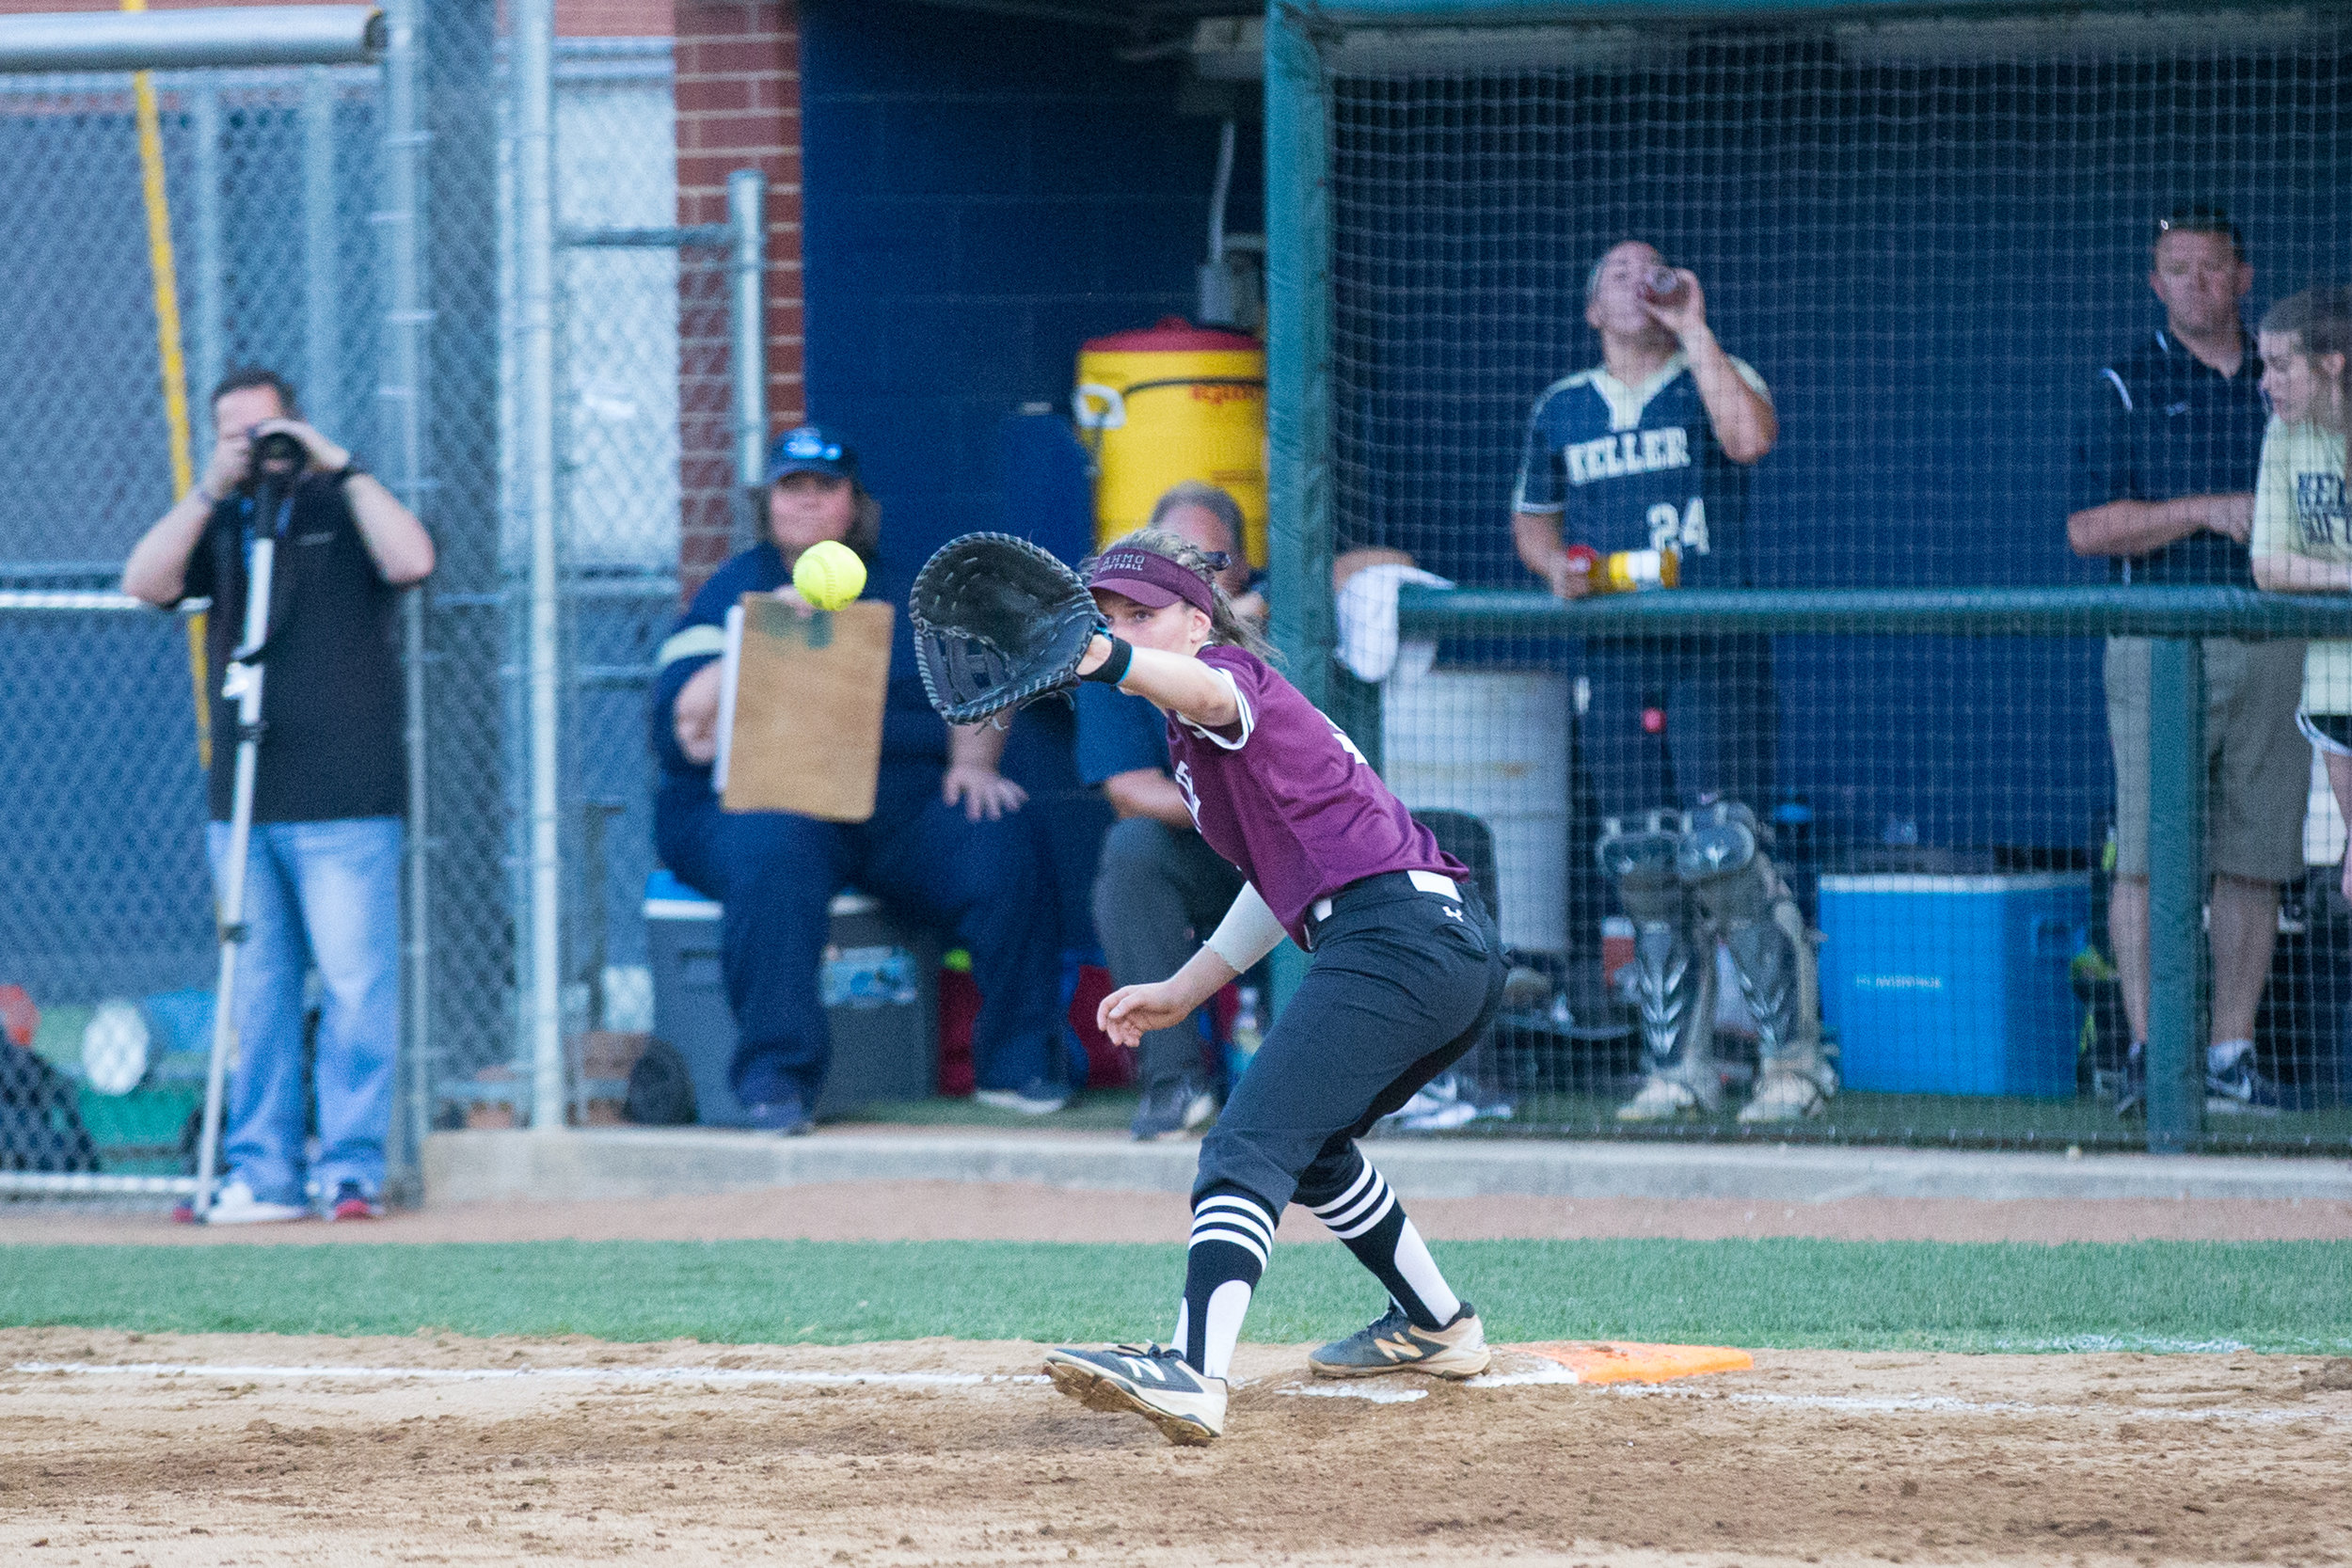 5_18 Wylie Softball-151.jpg